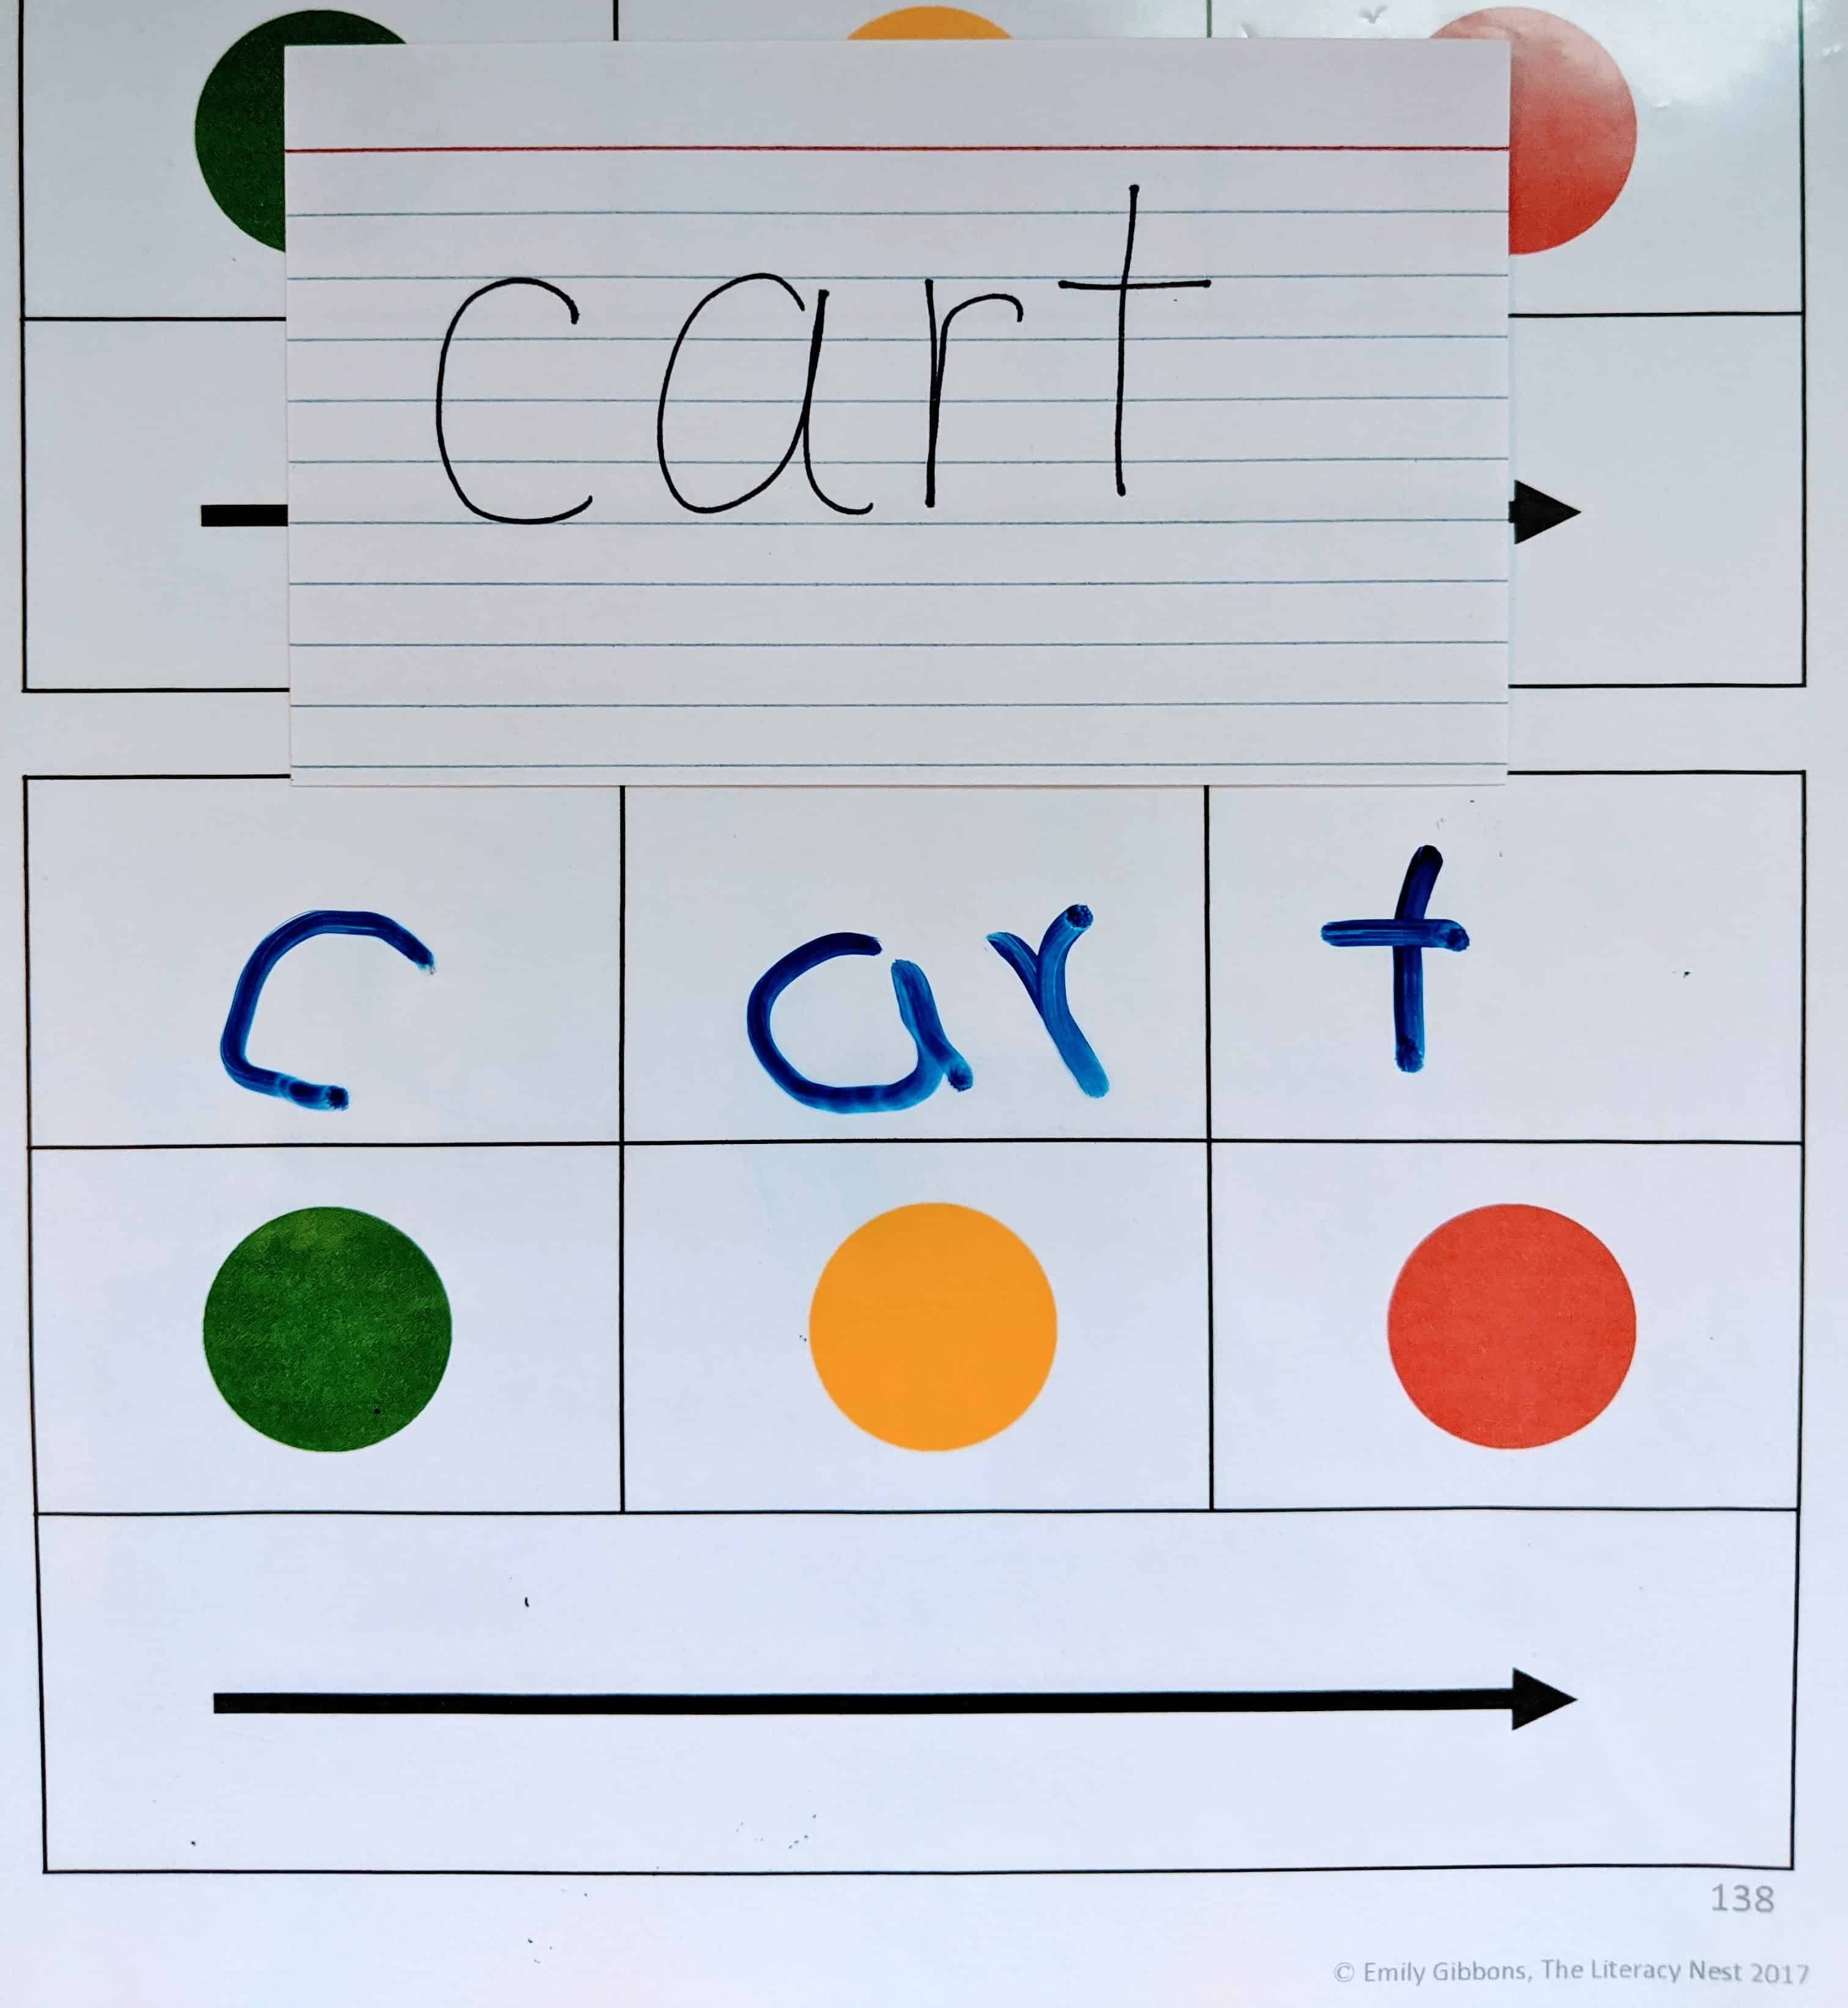 segmenting words with r controlled vowels